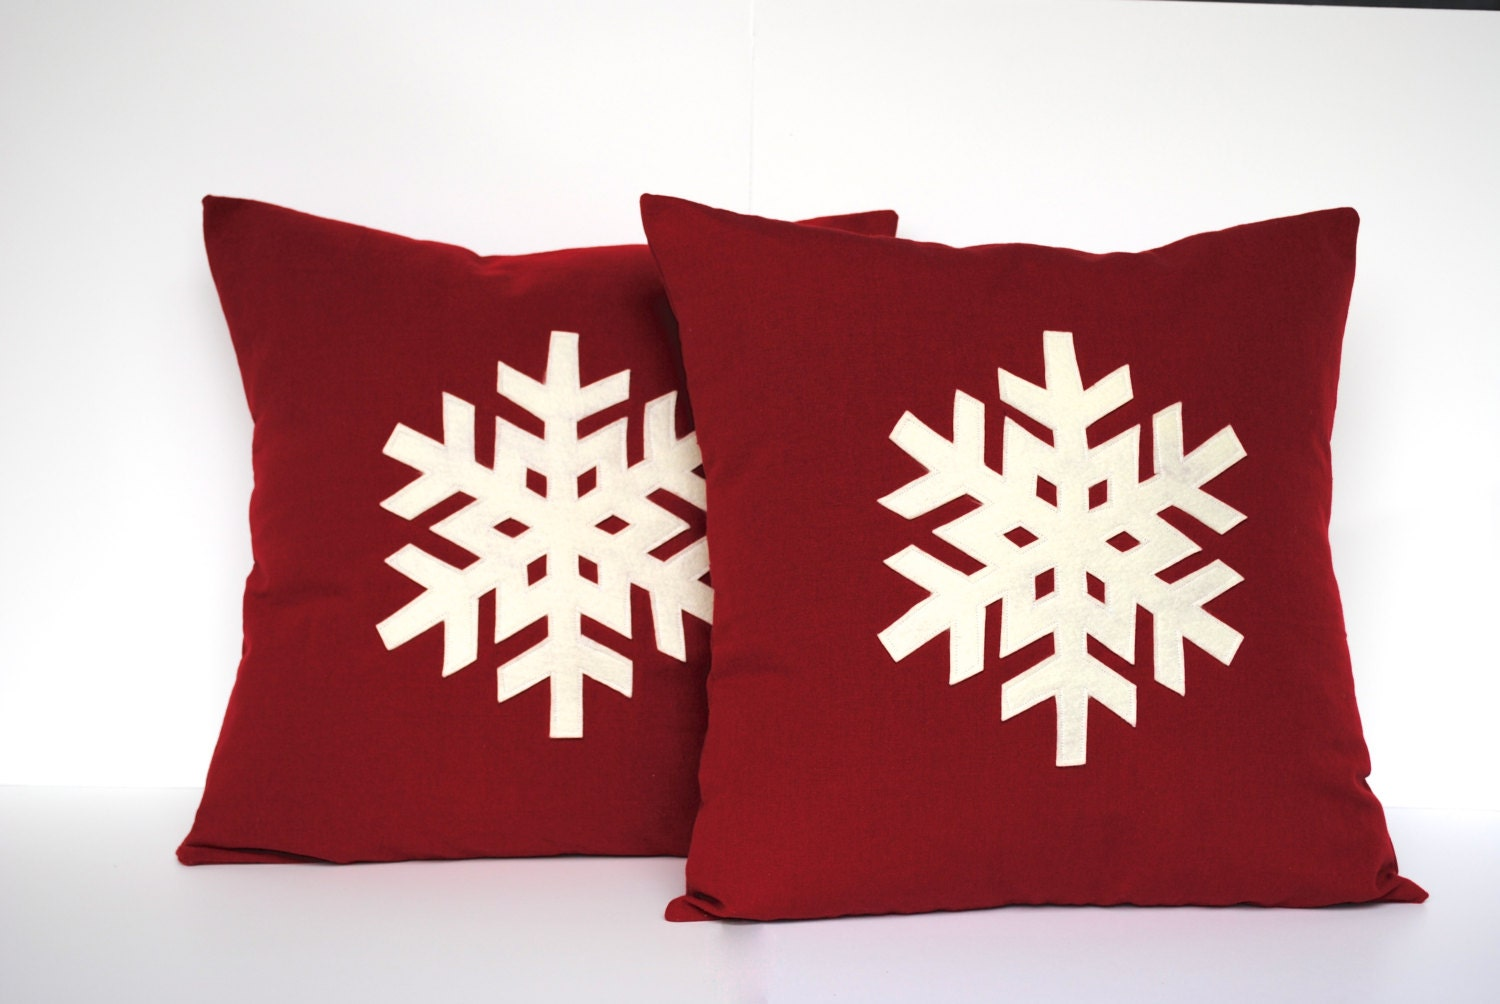 Add some holiday cheer to your favorite pillows with the